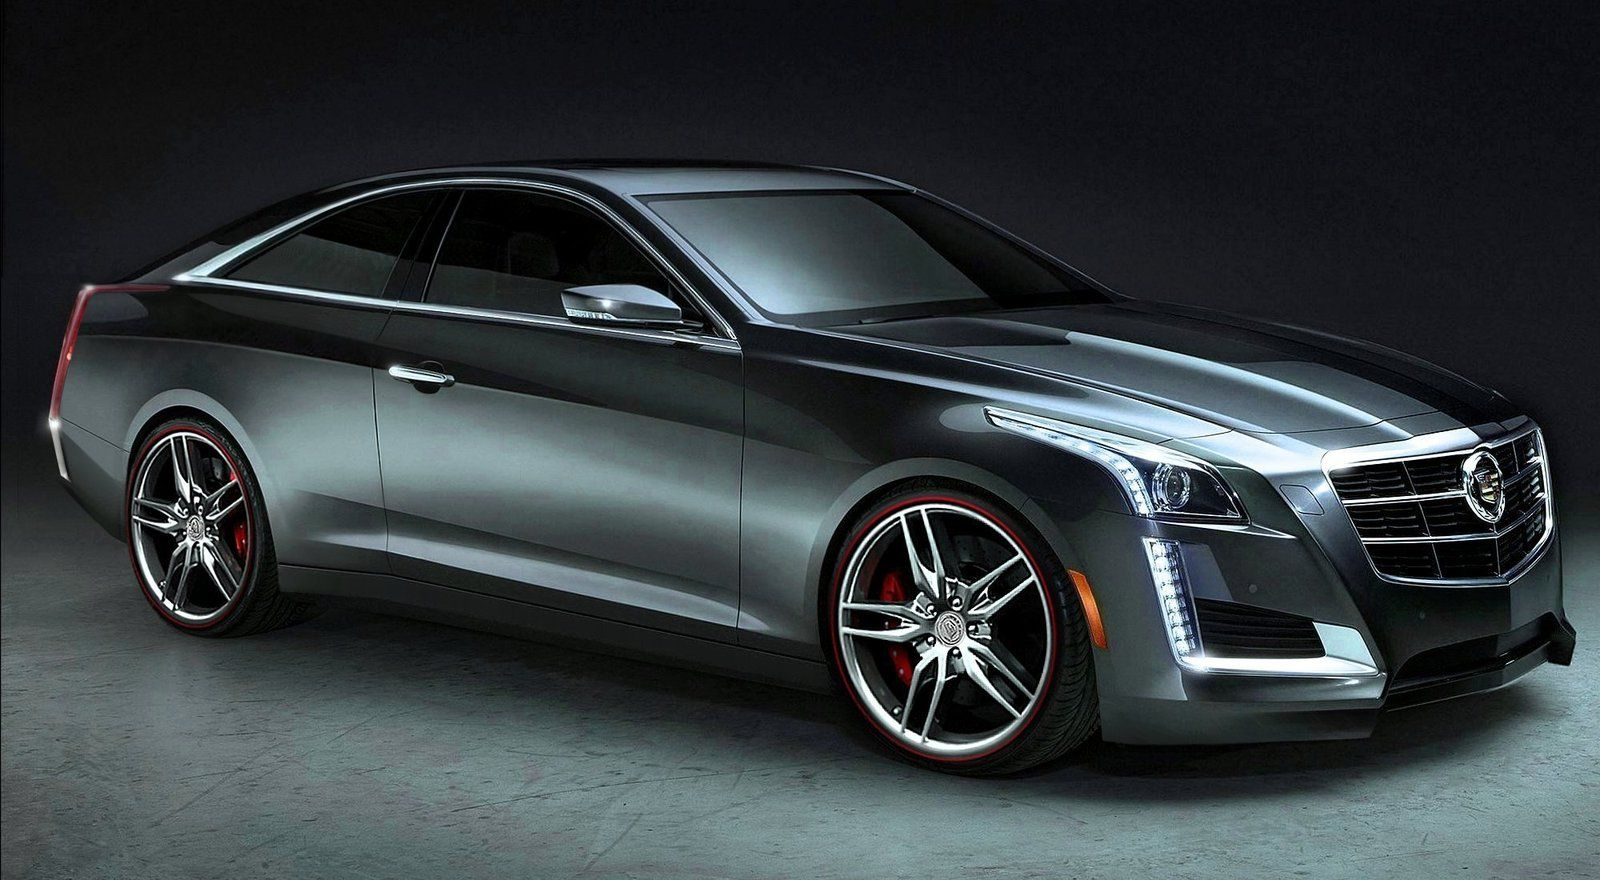 2015 cadillac cts coupe i would drive this car because i might use it